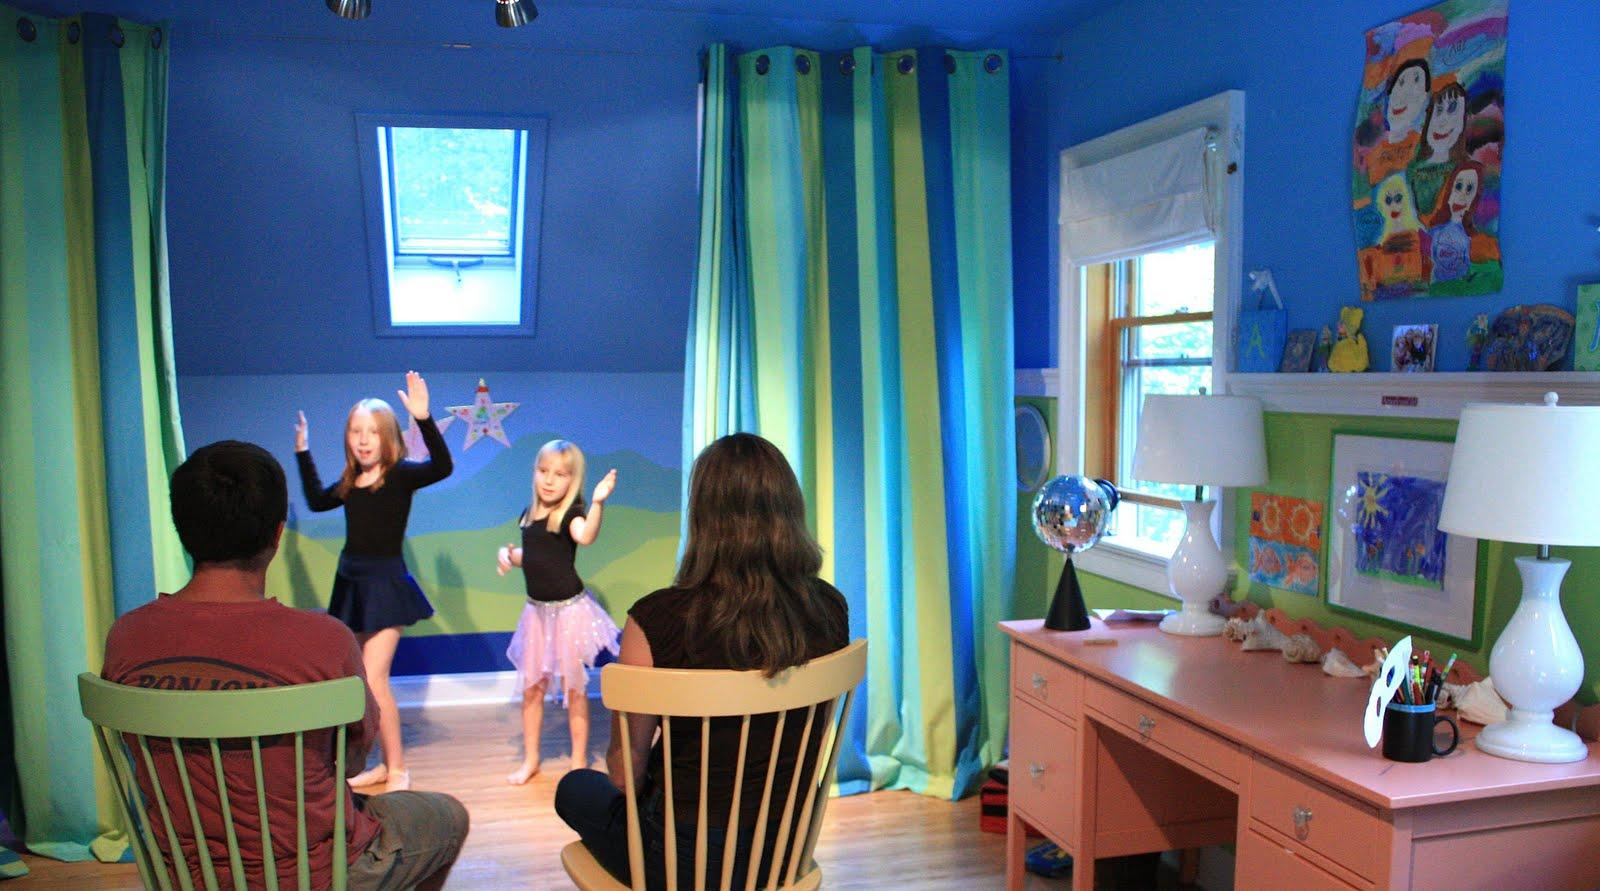 designerdad studio Tony Awards Spur the Dream, Give Your Child a Stage